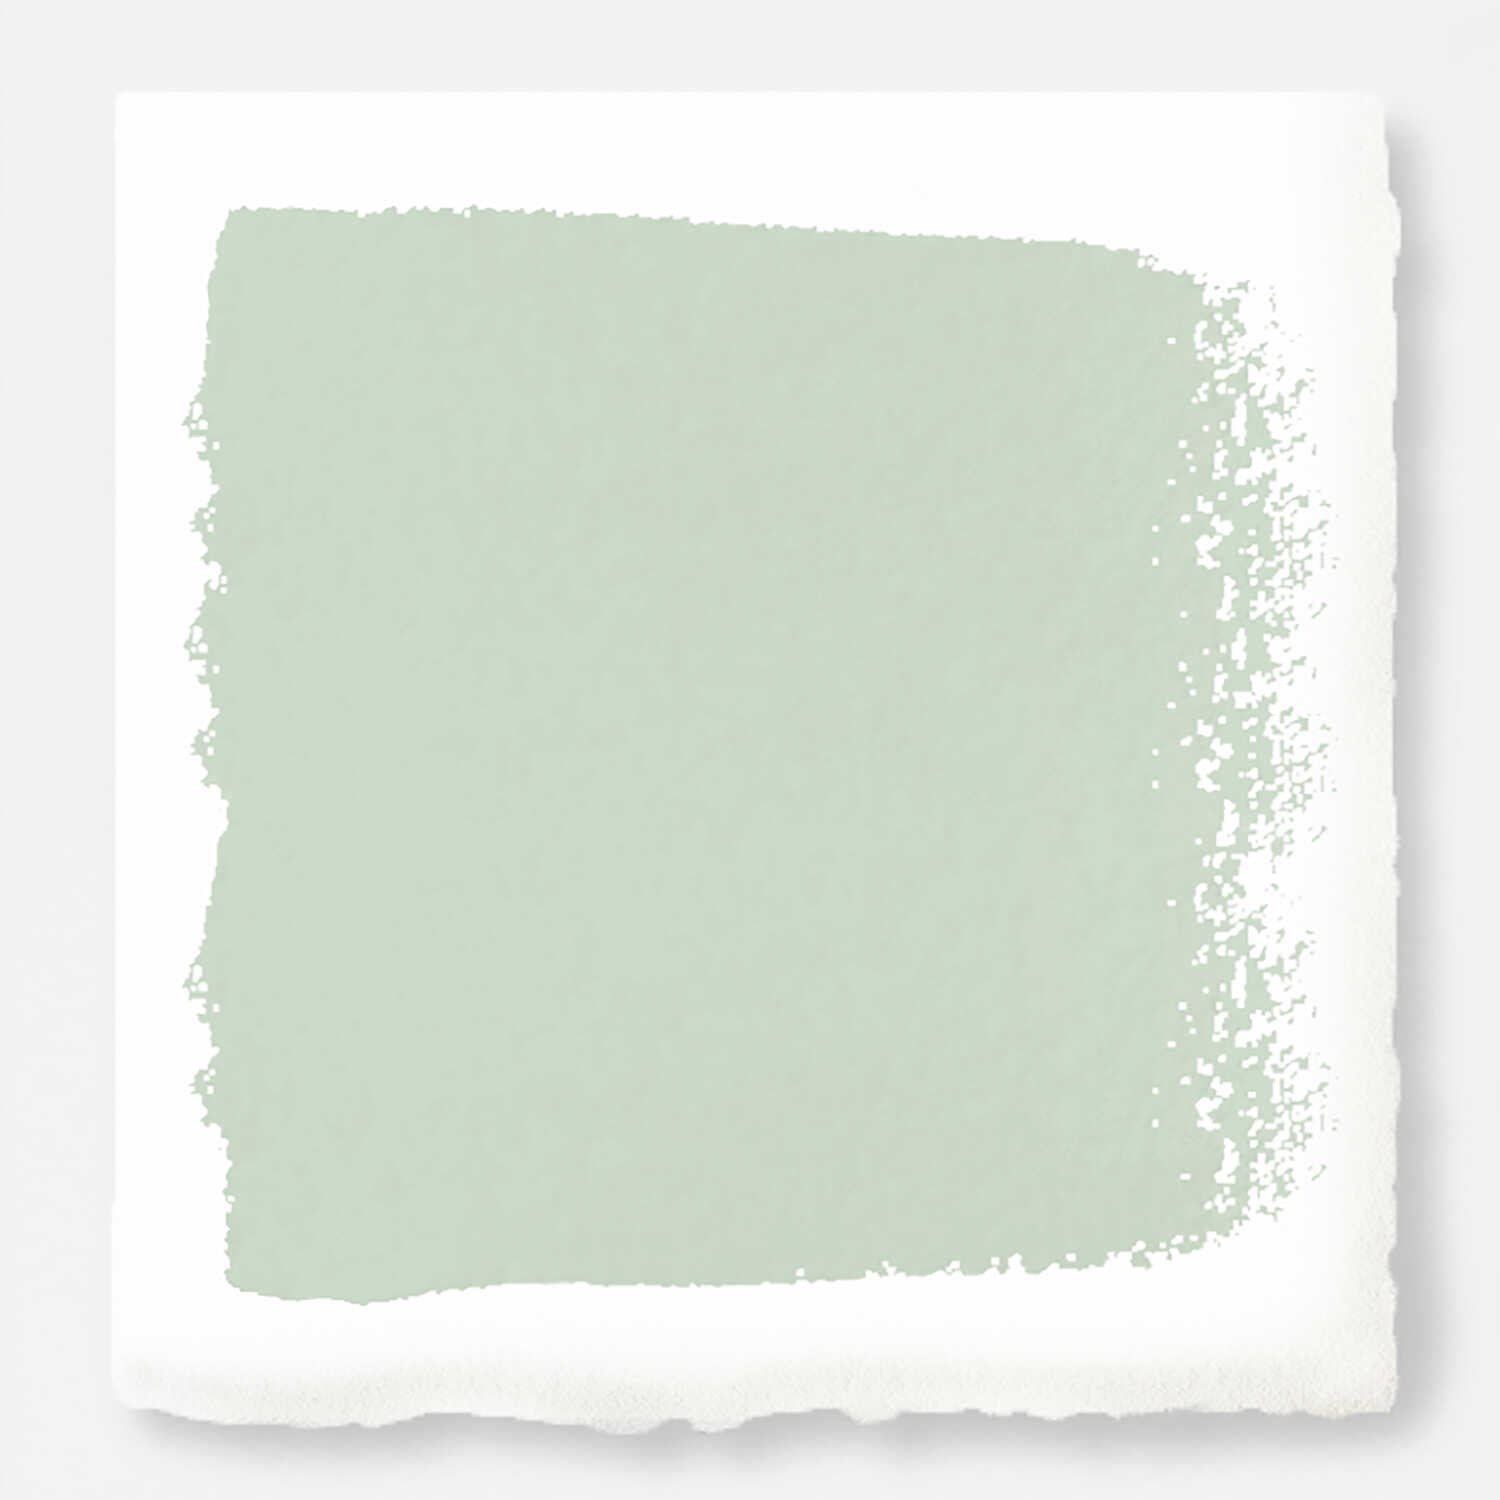 Magnolia Home  Semi-Gloss  Mineral Green  Exterior Paint and Primer  1 gal.